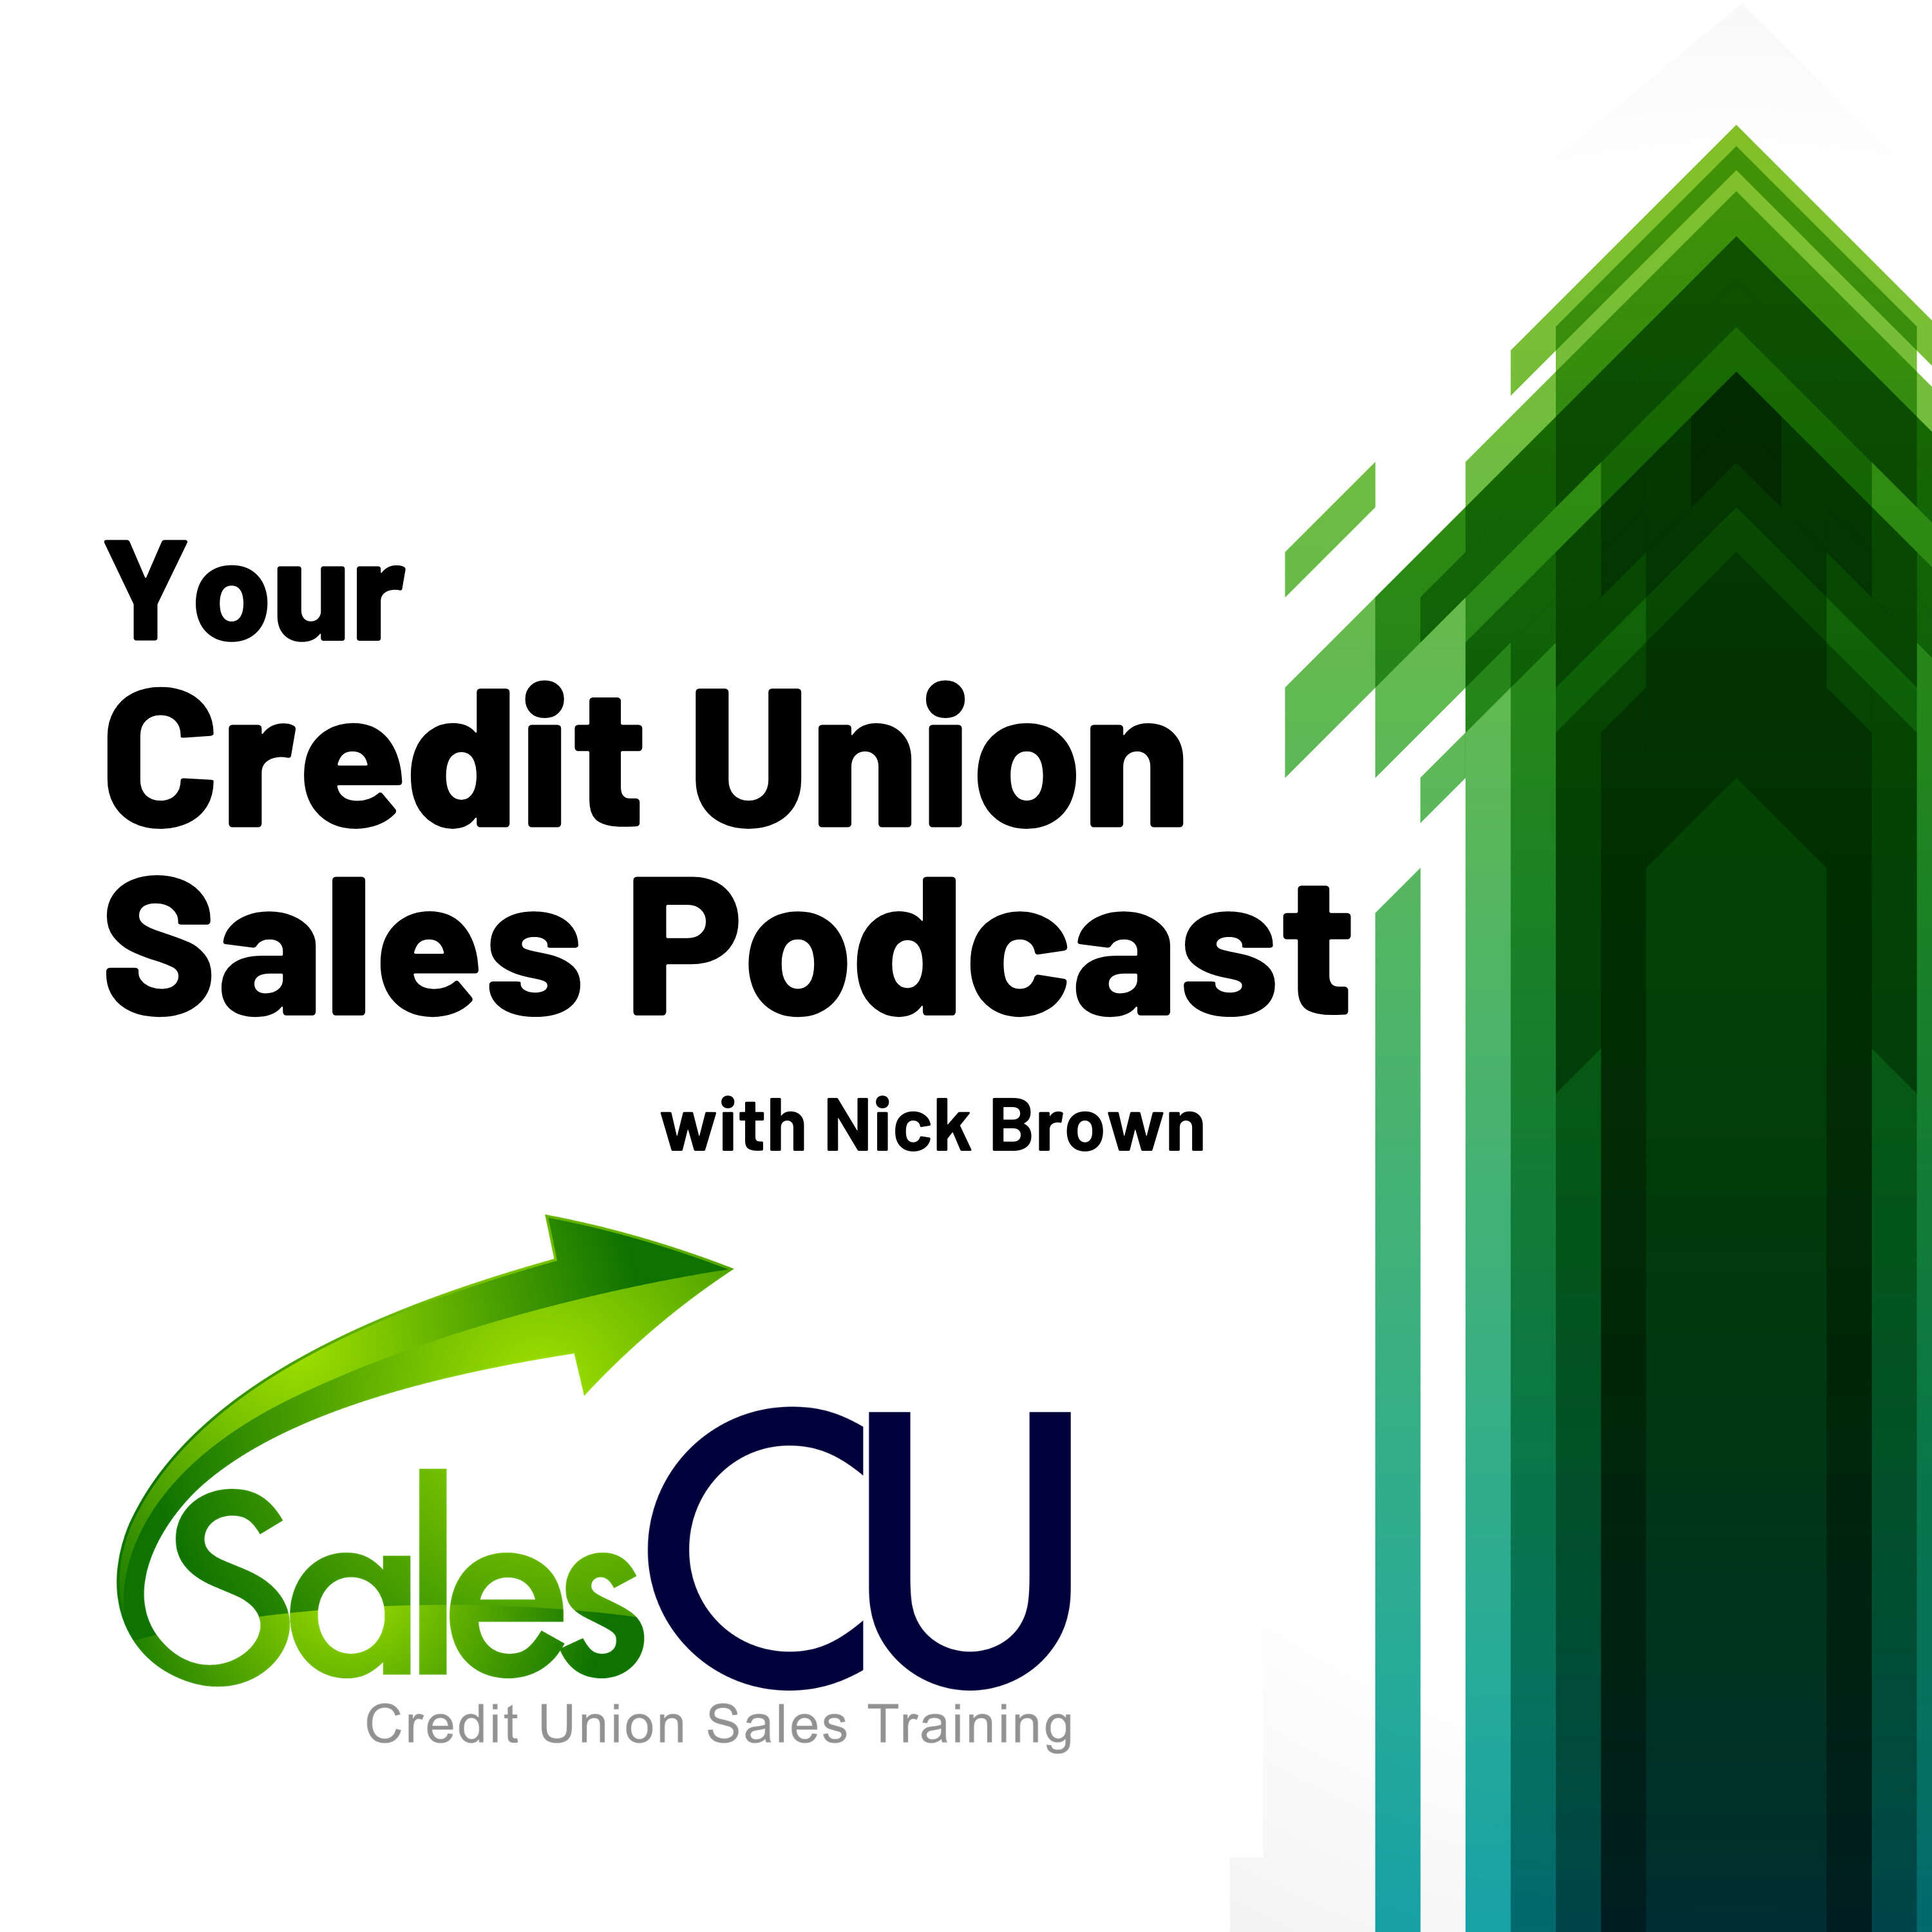 Your Credit Union Sales Podcast